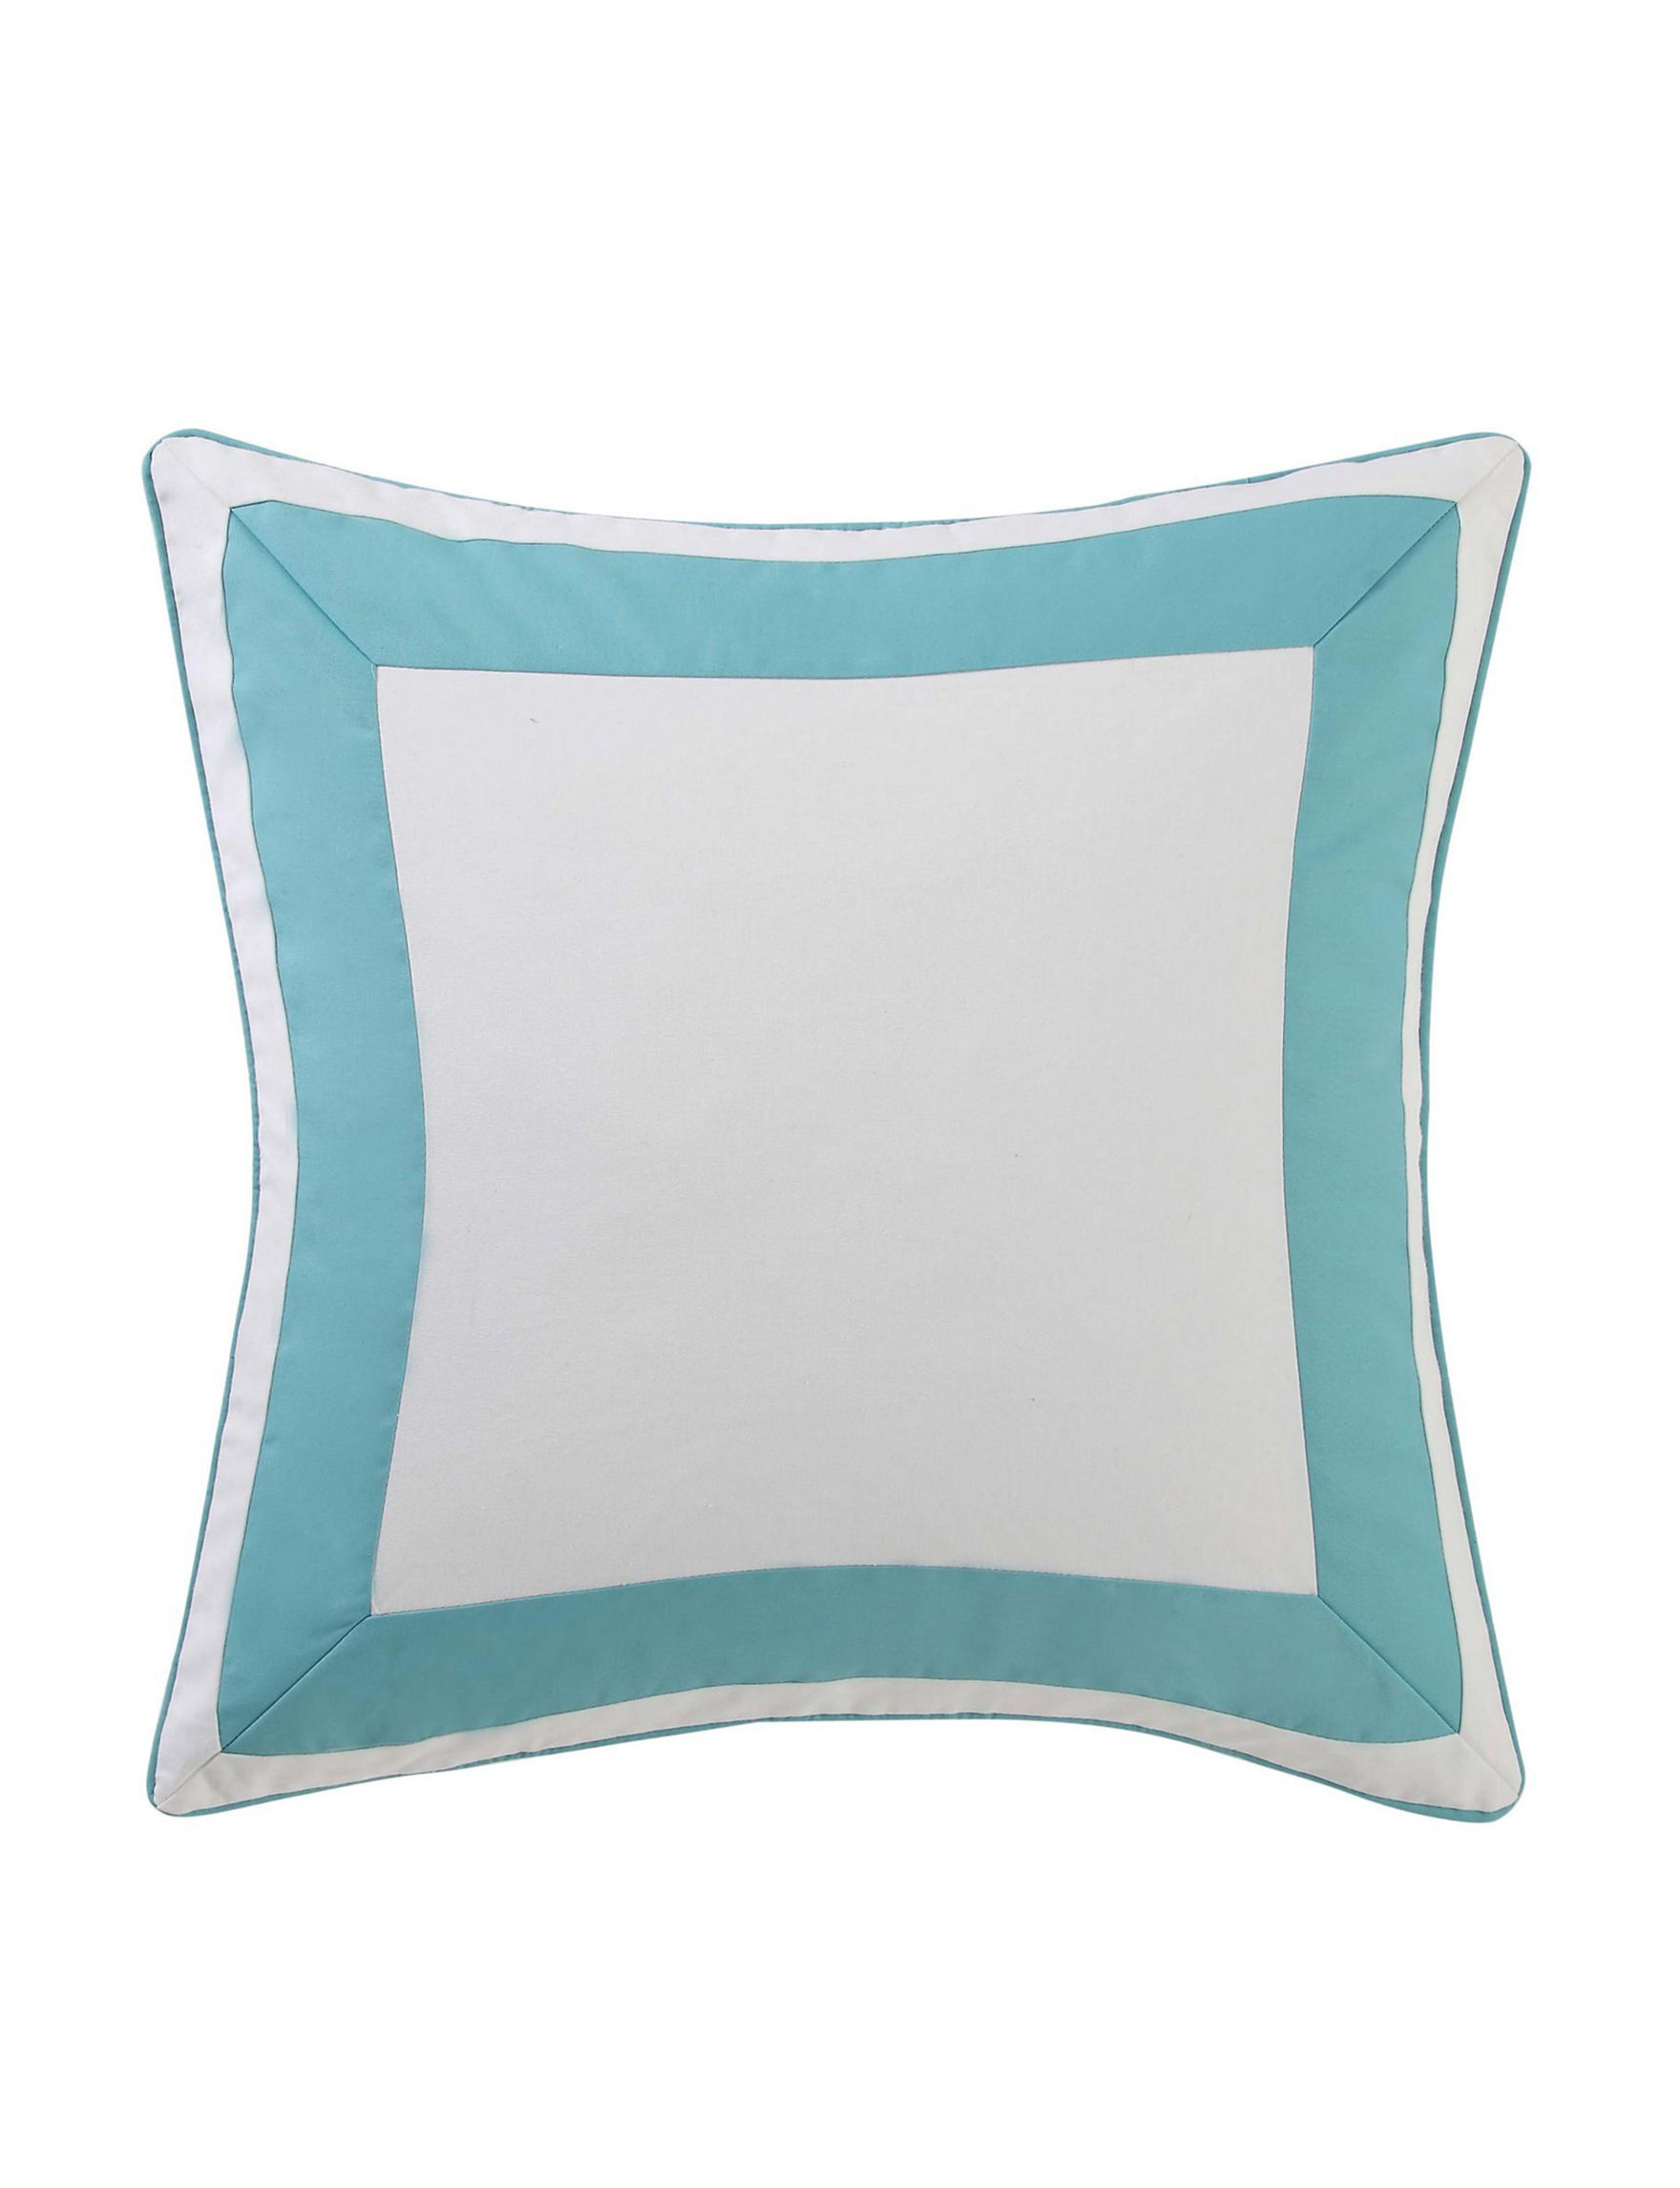 Oceanfront Resort Teal Sheets & Pillowcases